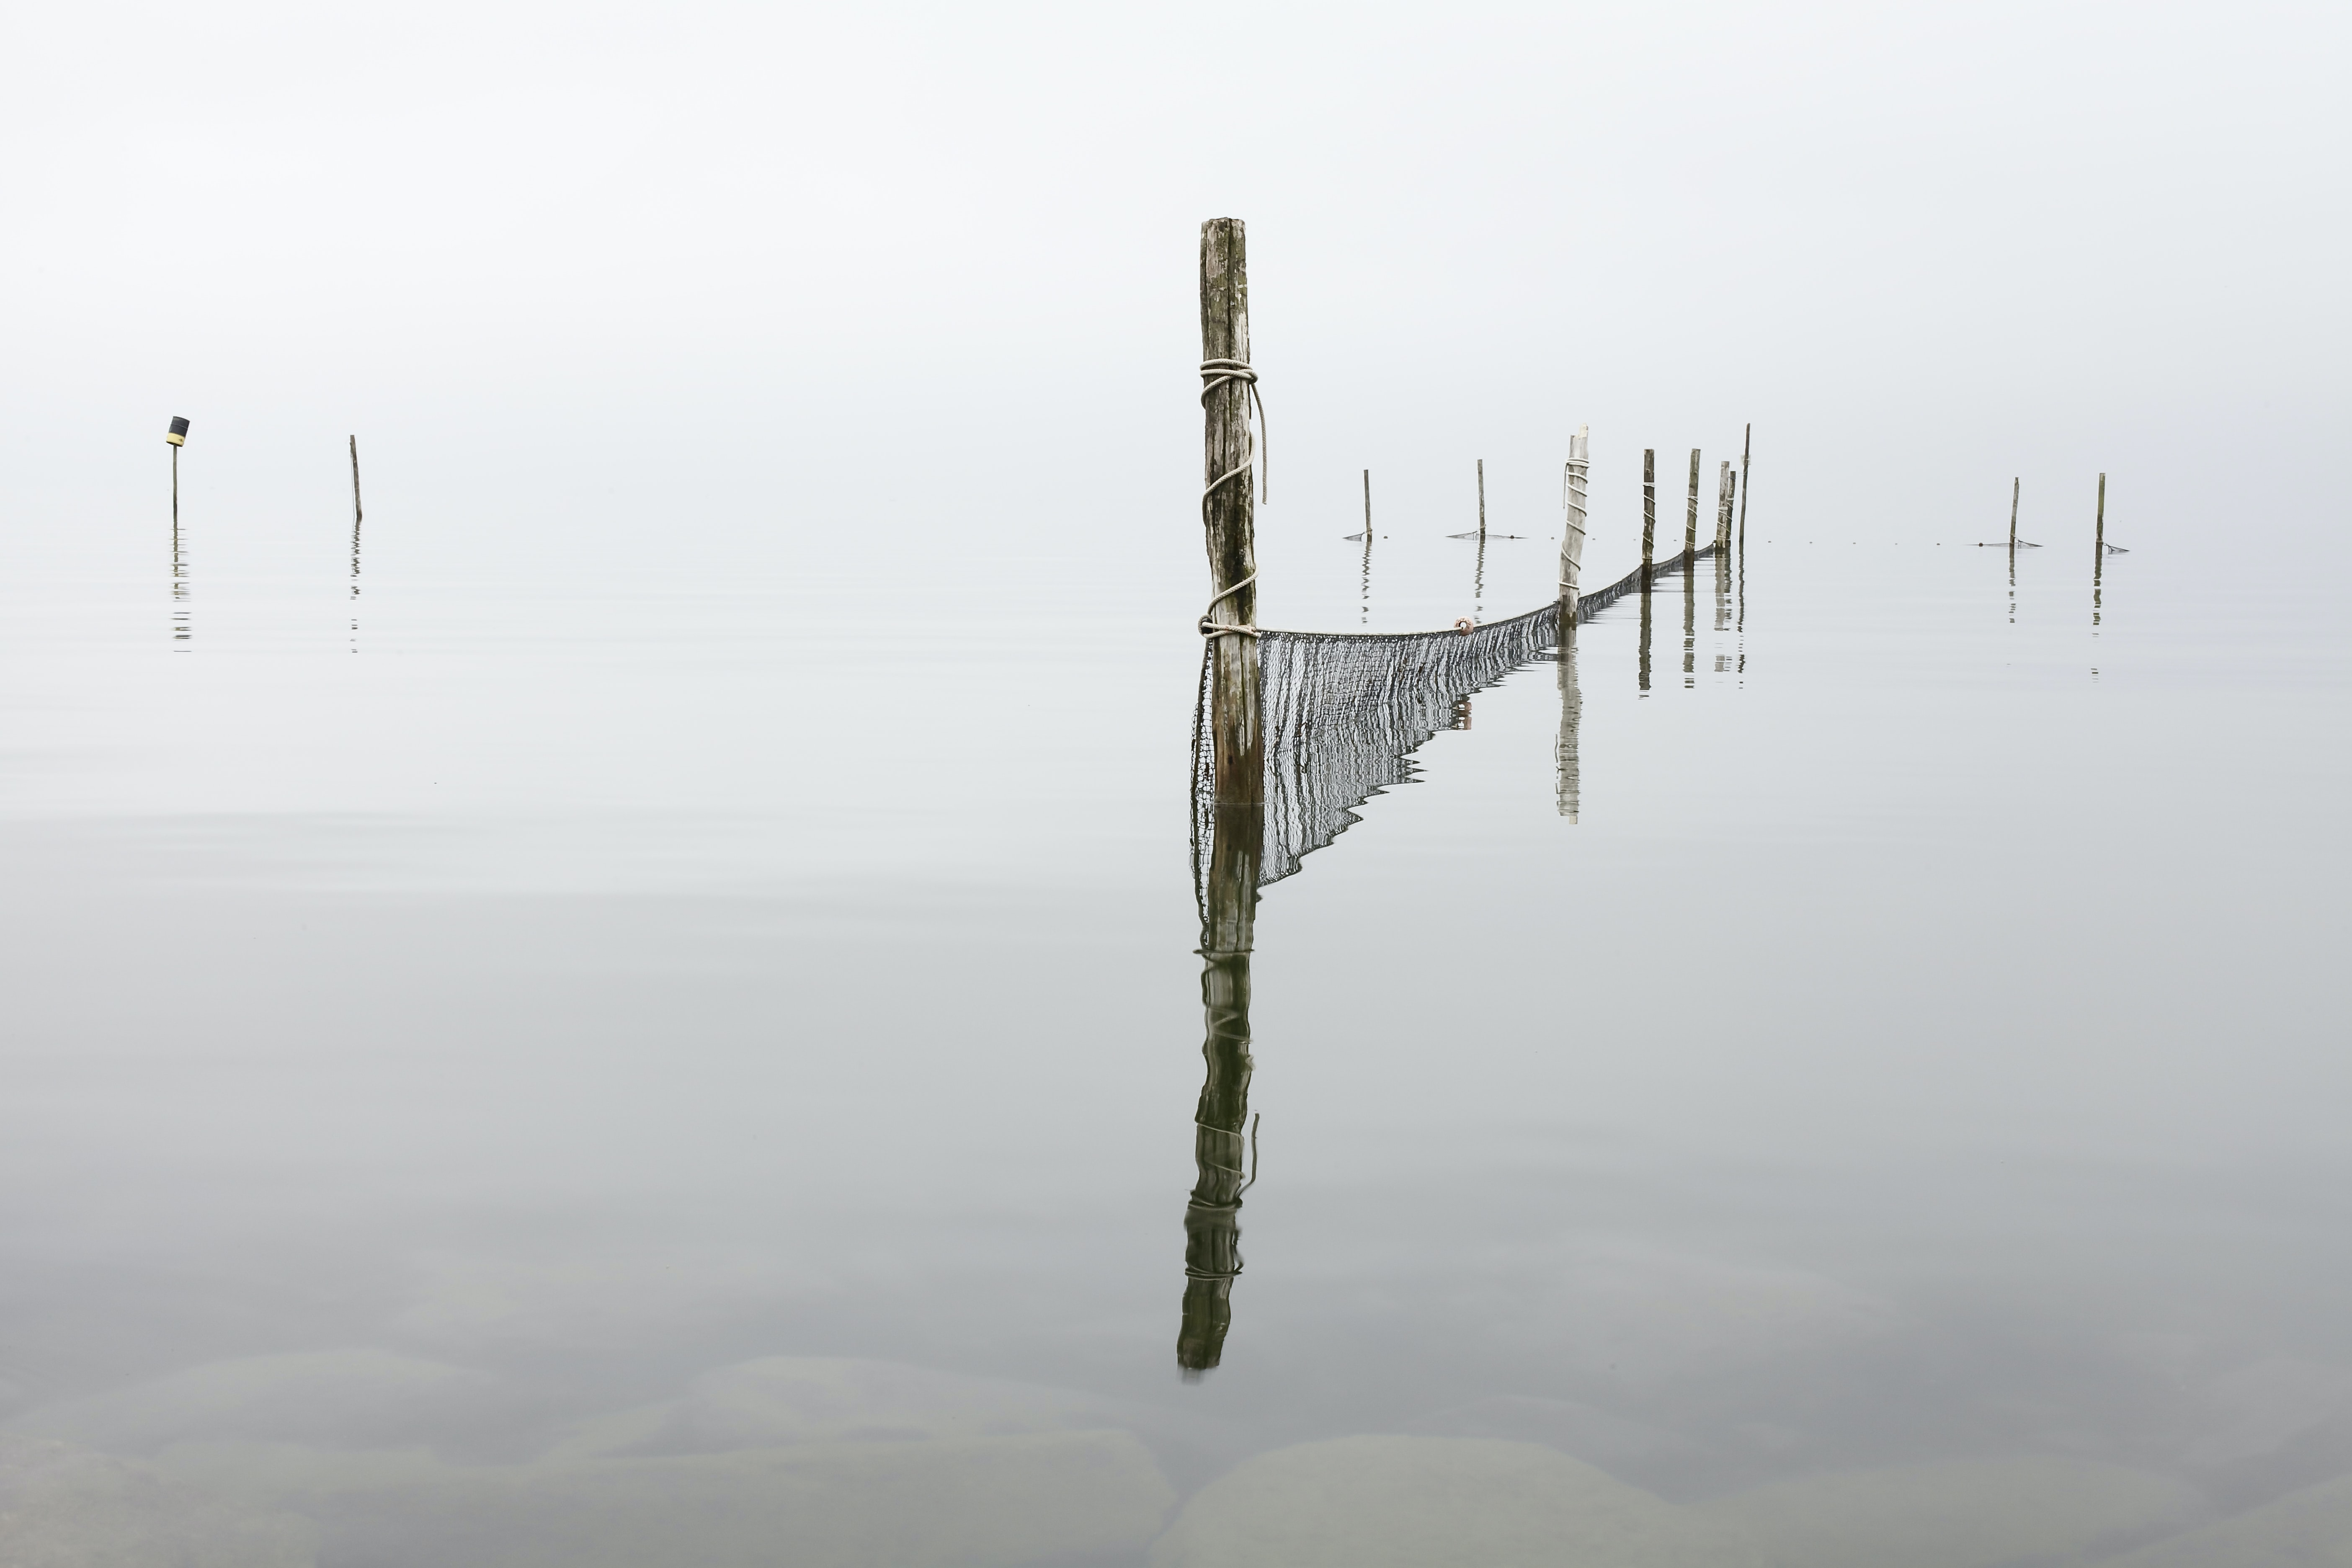 Reflections of wooden posts in clear waters on a cloudy day